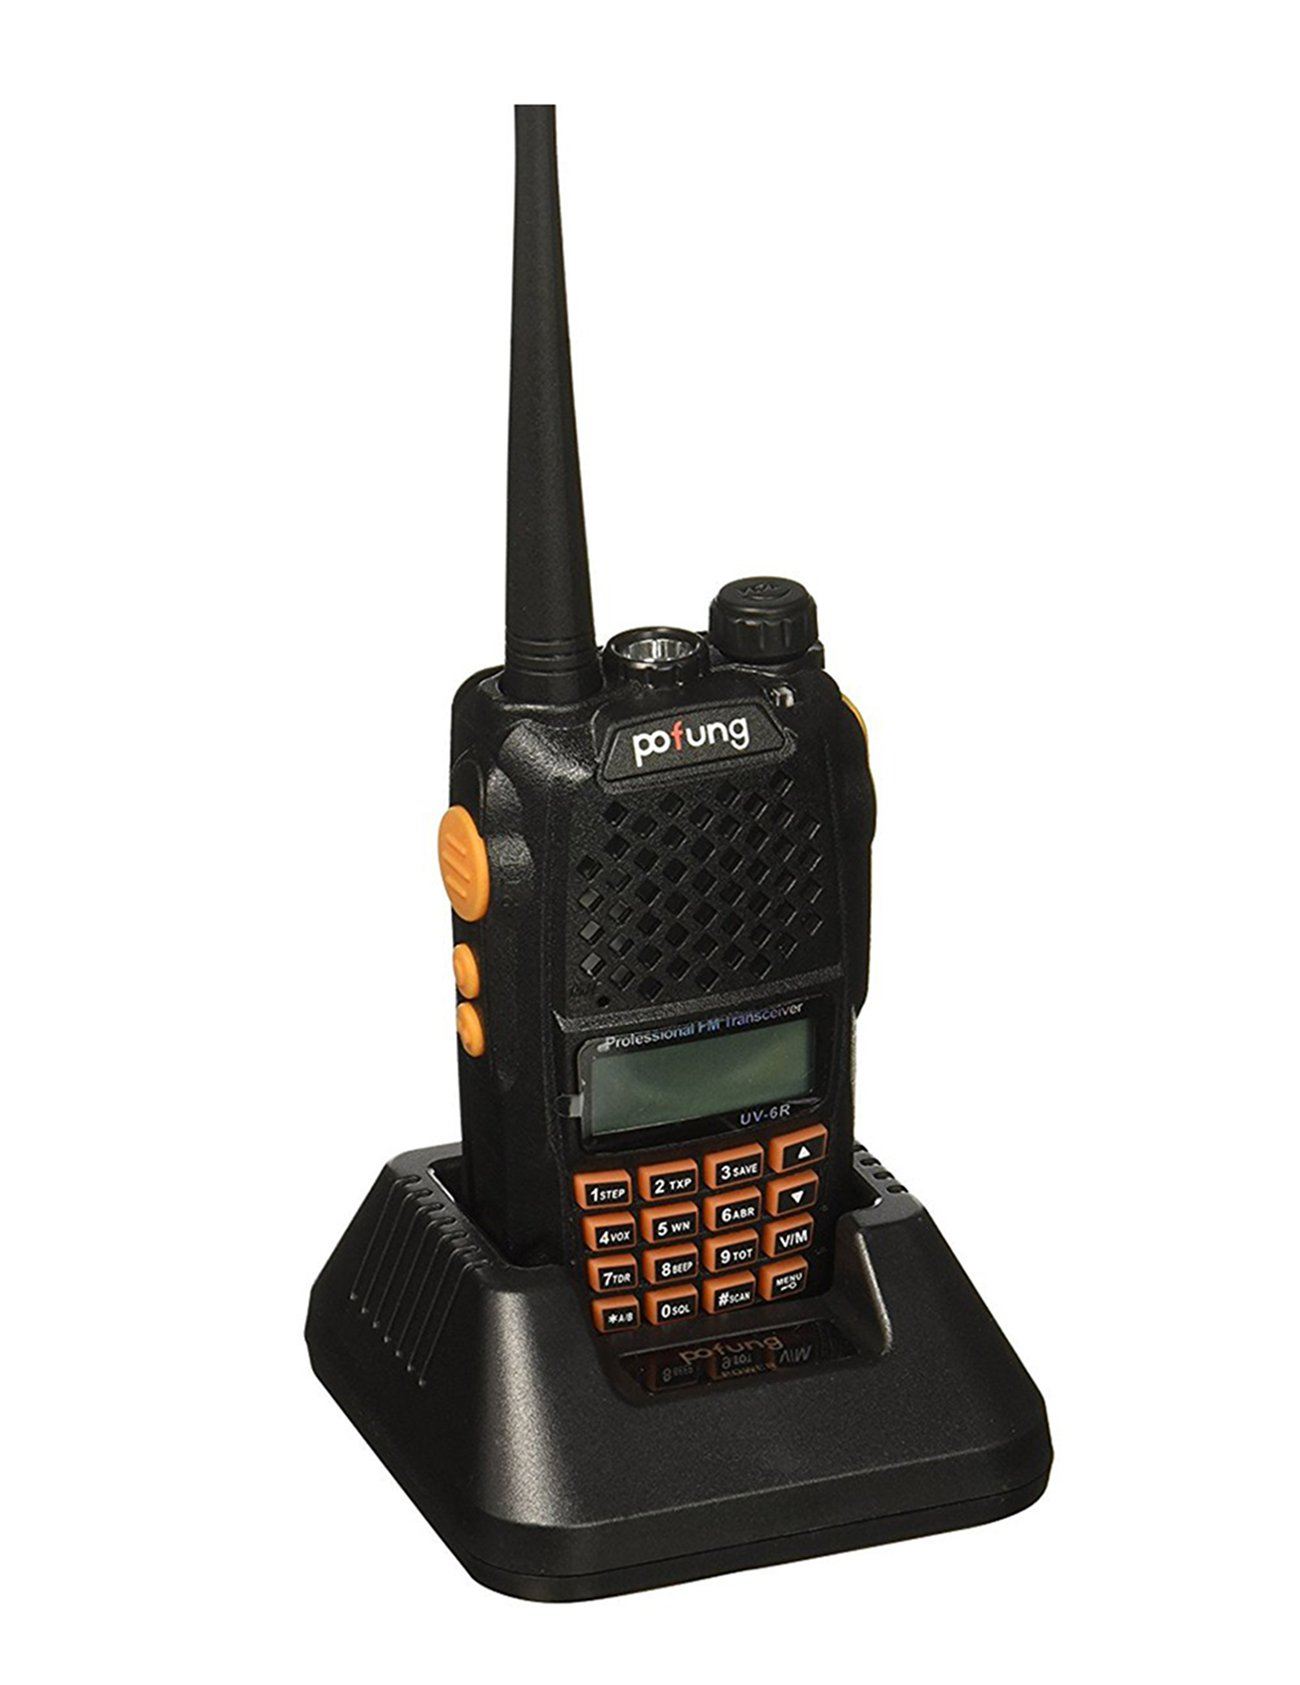 Mengshen Baofeng UV-6R Two Way Radio Dual-Band Transceiver Walkie Talkie Better than UV-5R VHF UHF FM 136-174/400-520MHz High Power 5W/1W Up to 128 Channels Built-in VOX Function with LED Flashlight